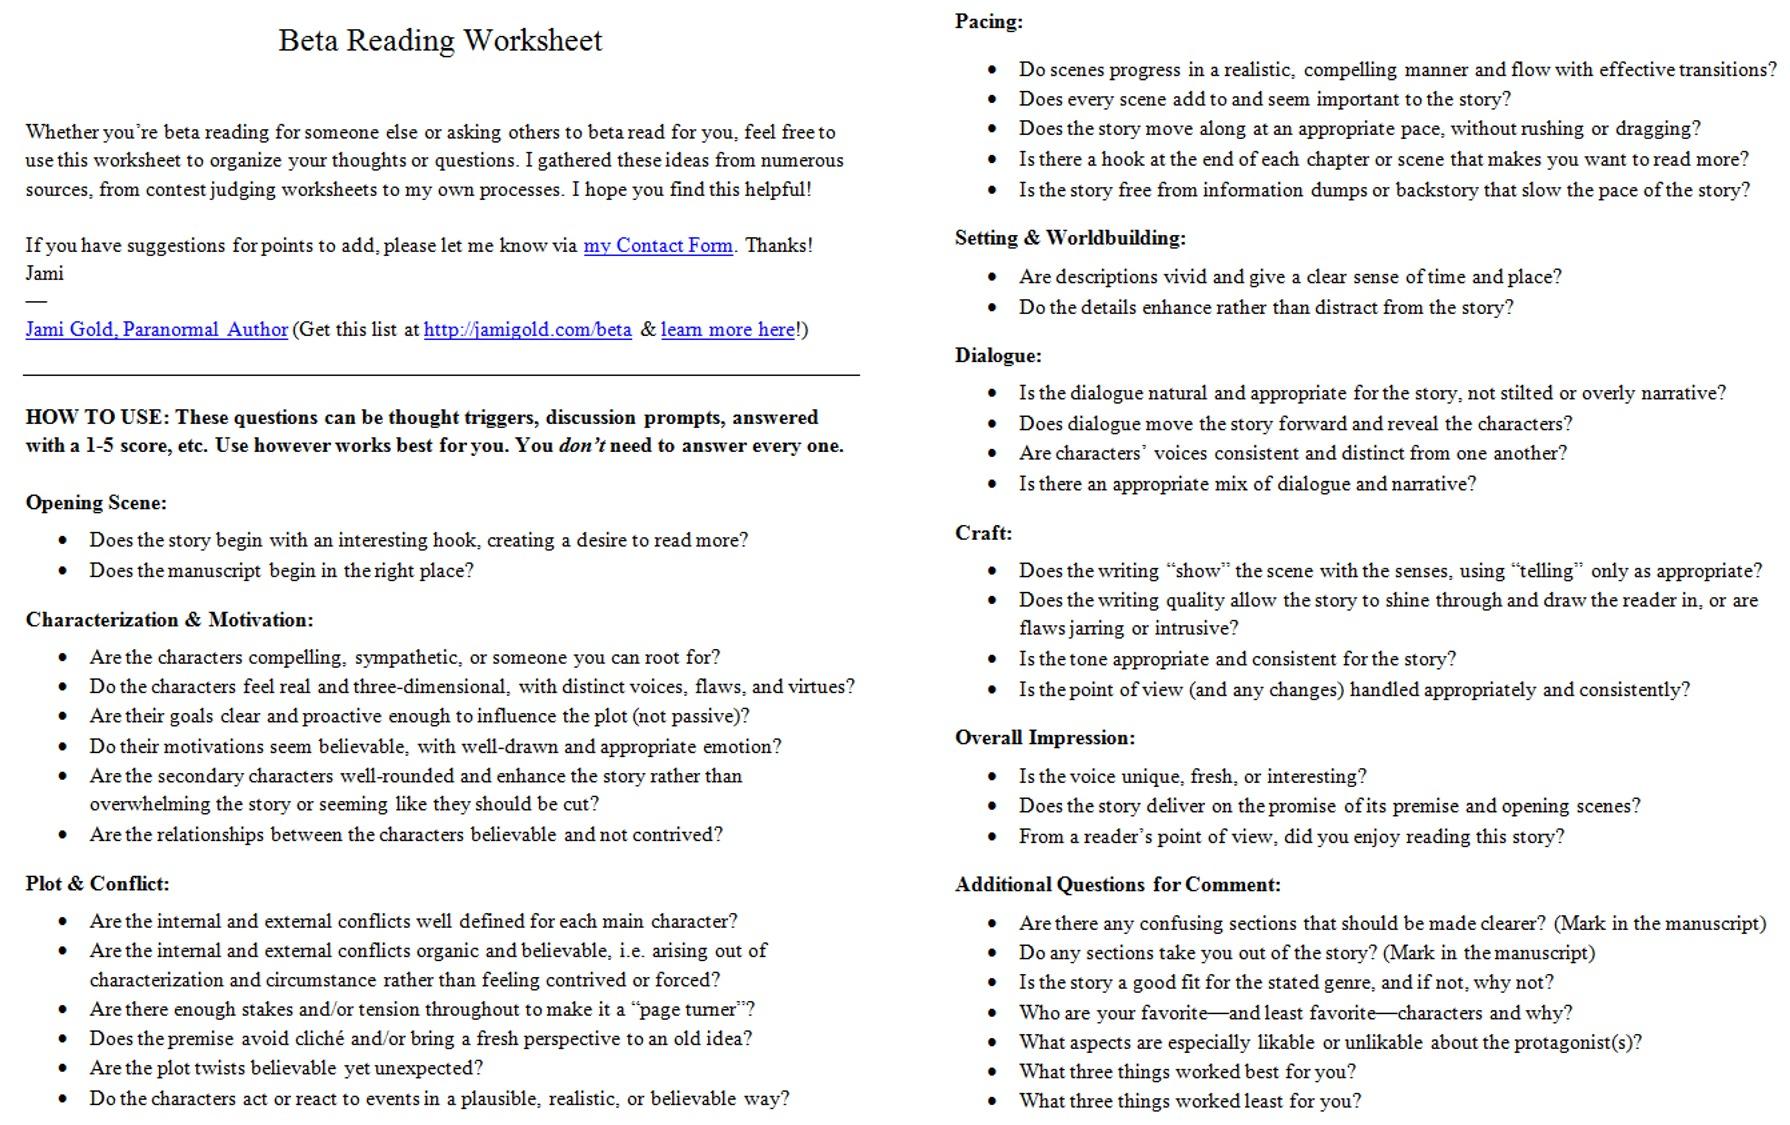 Aldiablosus  Pretty Worksheets For Writers  Jami Gold Paranormal Author With Gorgeous Screen Shot Of The Twopage Beta Reading Worksheet With Breathtaking Jim Crow Laws Worksheet Also Thirteen Colonies Worksheets In Addition First Grade Main Idea Worksheets And Graphing Worksheets Nd Grade As Well As The Nature Of Matter Worksheet Additionally Multiplication Worksheet Pdf From Jamigoldcom With Aldiablosus  Gorgeous Worksheets For Writers  Jami Gold Paranormal Author With Breathtaking Screen Shot Of The Twopage Beta Reading Worksheet And Pretty Jim Crow Laws Worksheet Also Thirteen Colonies Worksheets In Addition First Grade Main Idea Worksheets From Jamigoldcom